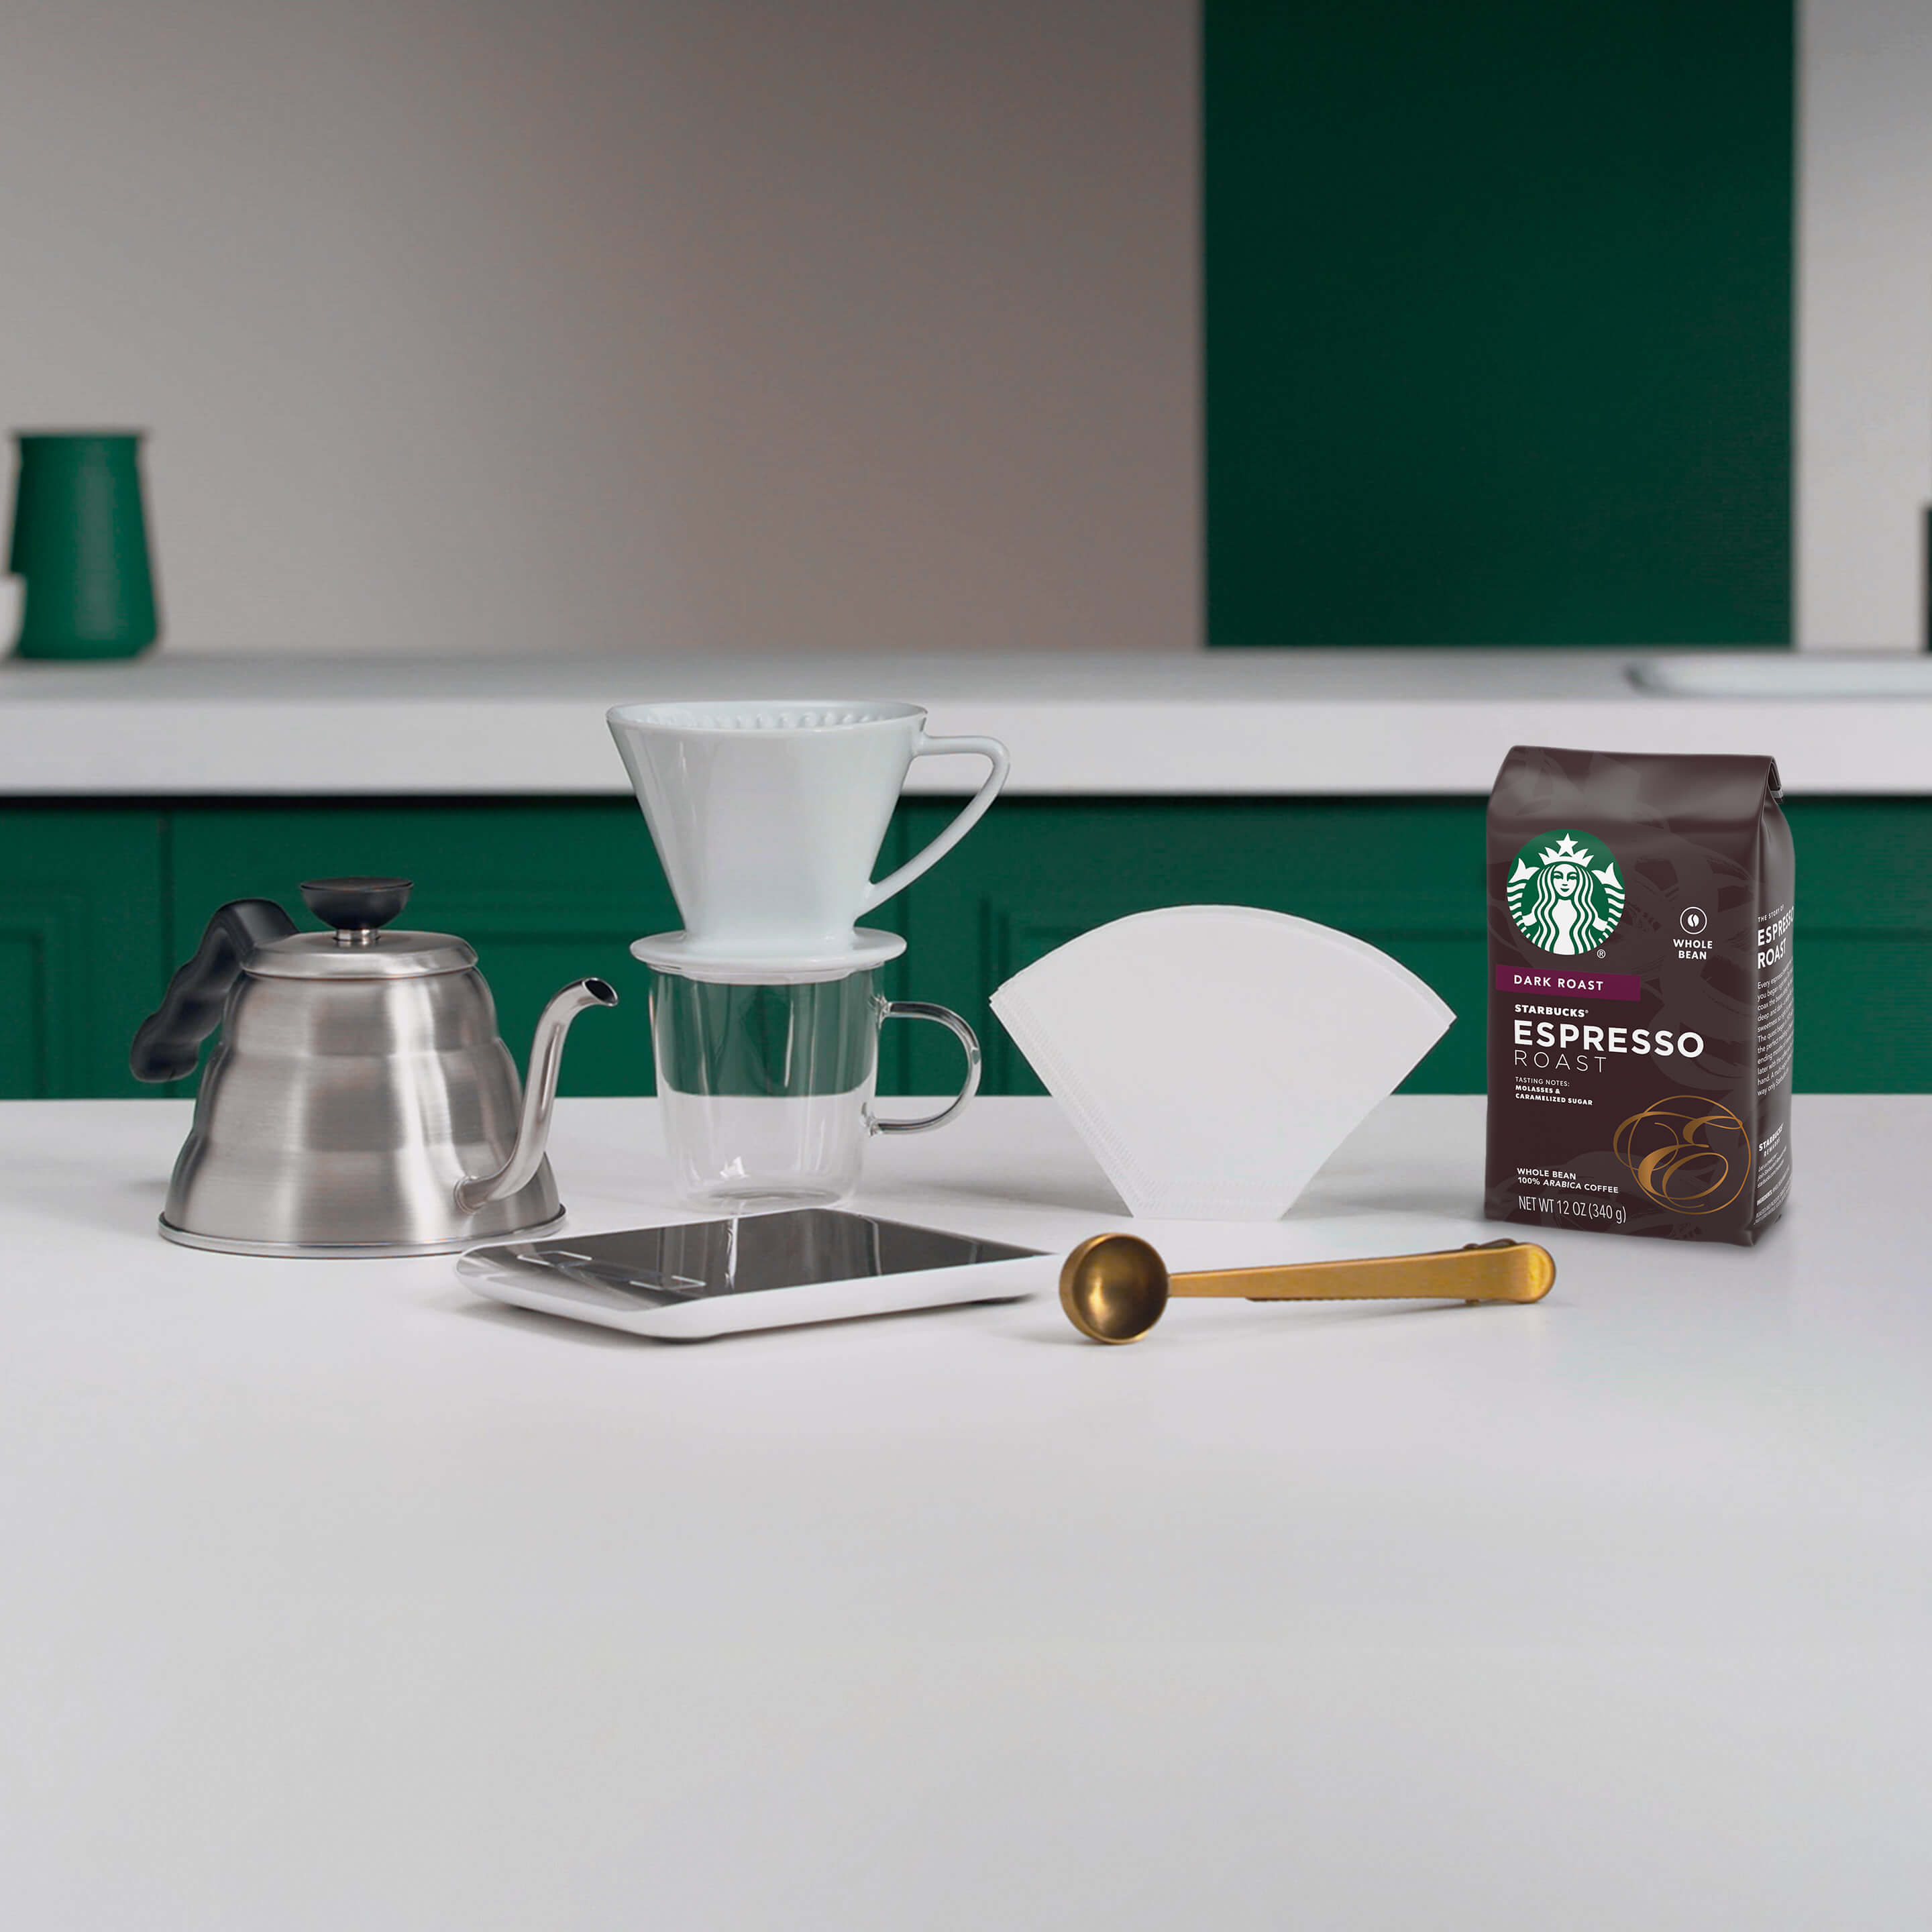 Pour over brewing guide equipment